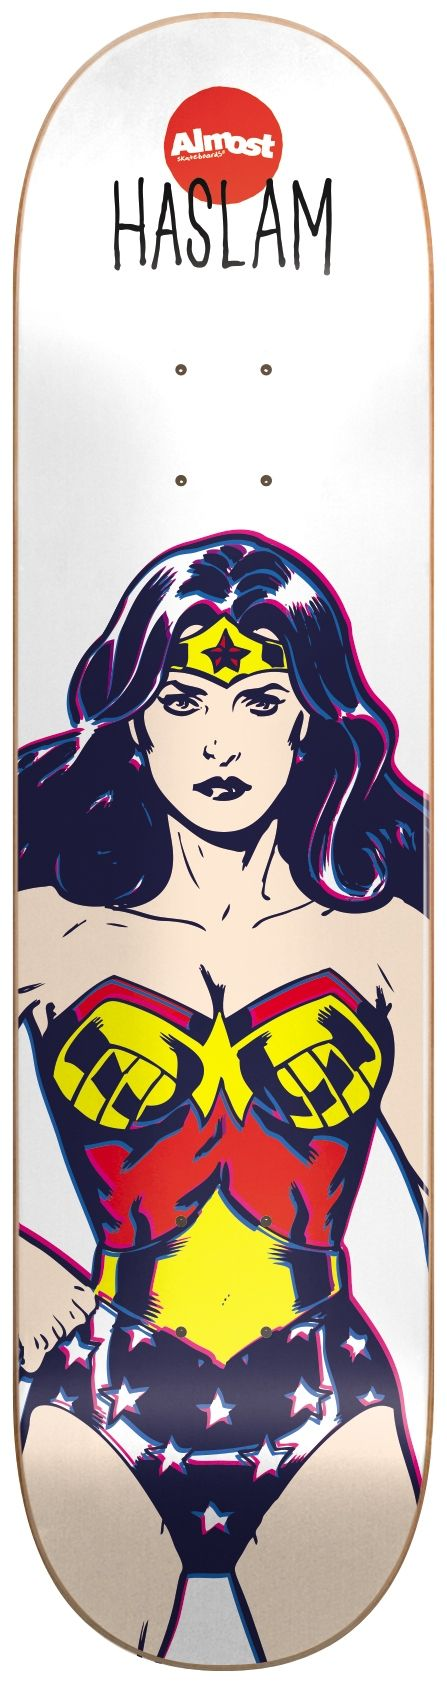 Almost Wonder Woman R7 Skateboard Deck - Haslam 8.38"